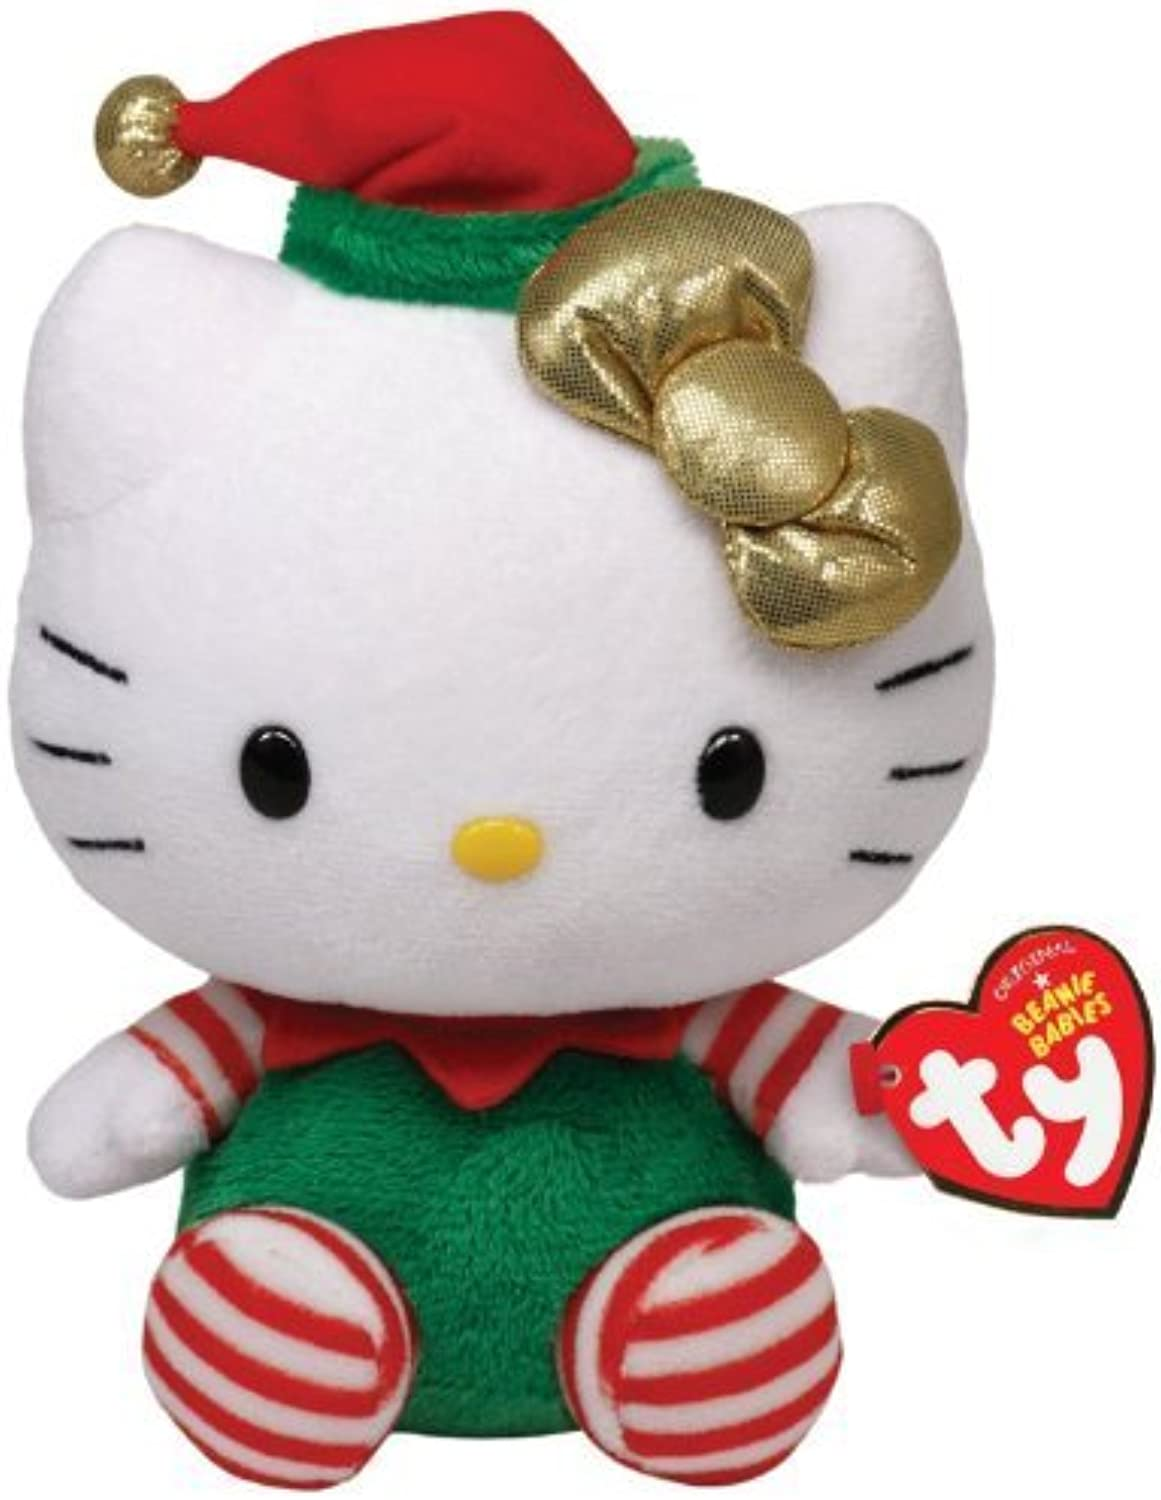 muchas sorpresas Ty Beanie Babies Beanie Beanie Beanie Babies Hello Kitty Hello Kitty - verde Christmas Outfit - official product parallel imports (japan import) by Ty  60% de descuento